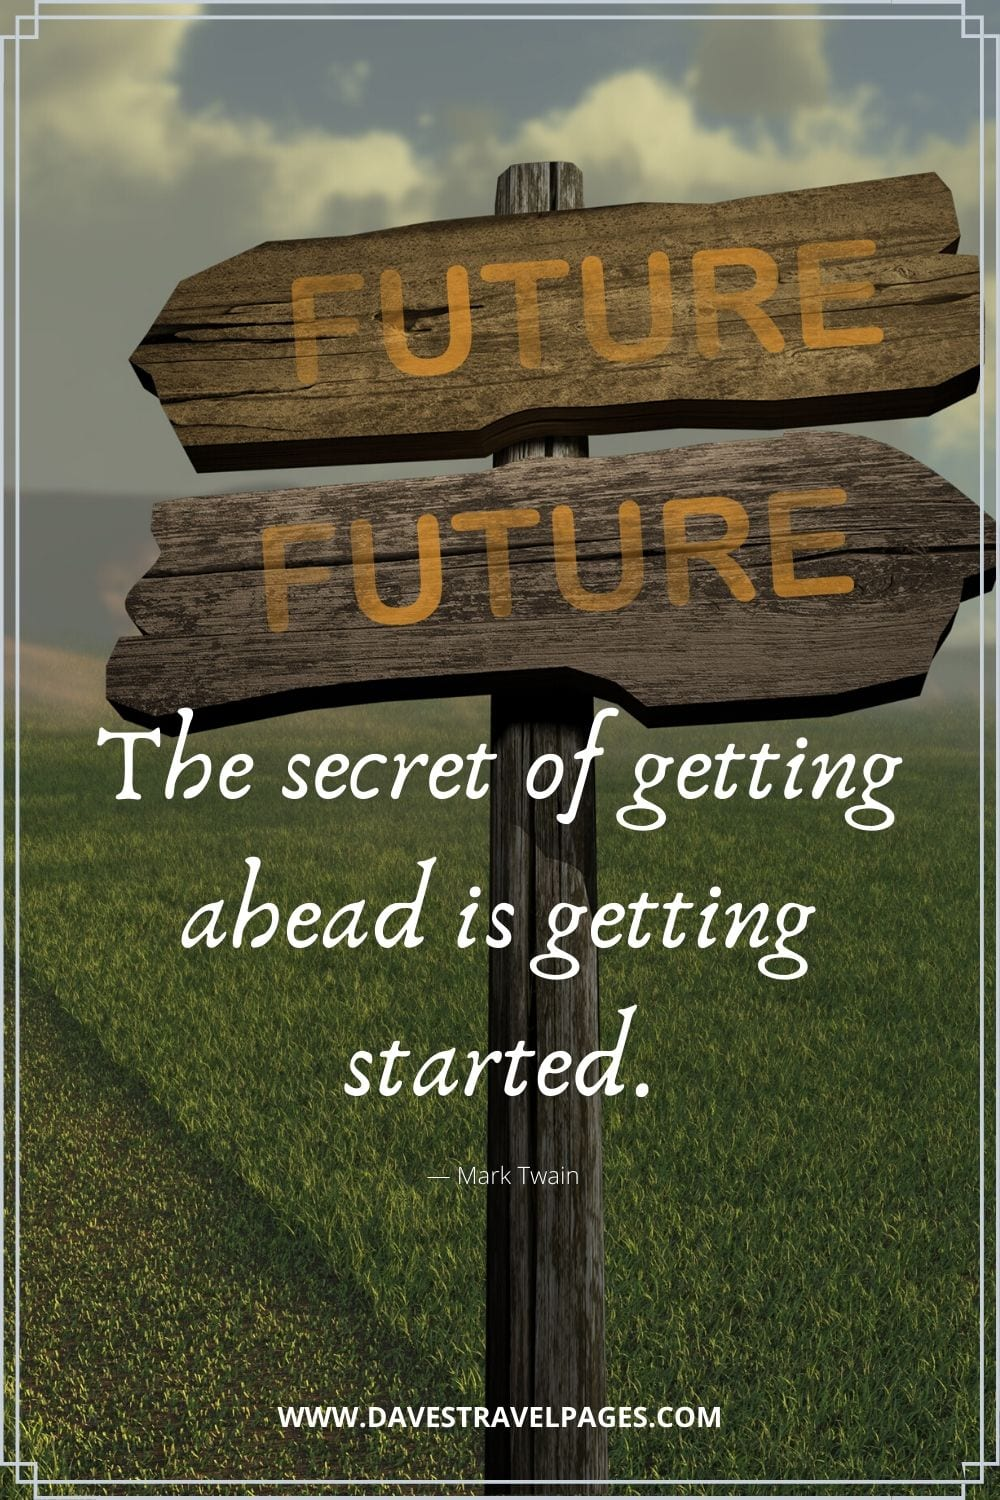 The secret of getting ahead is getting started. - Mark Twain Motivational Quote